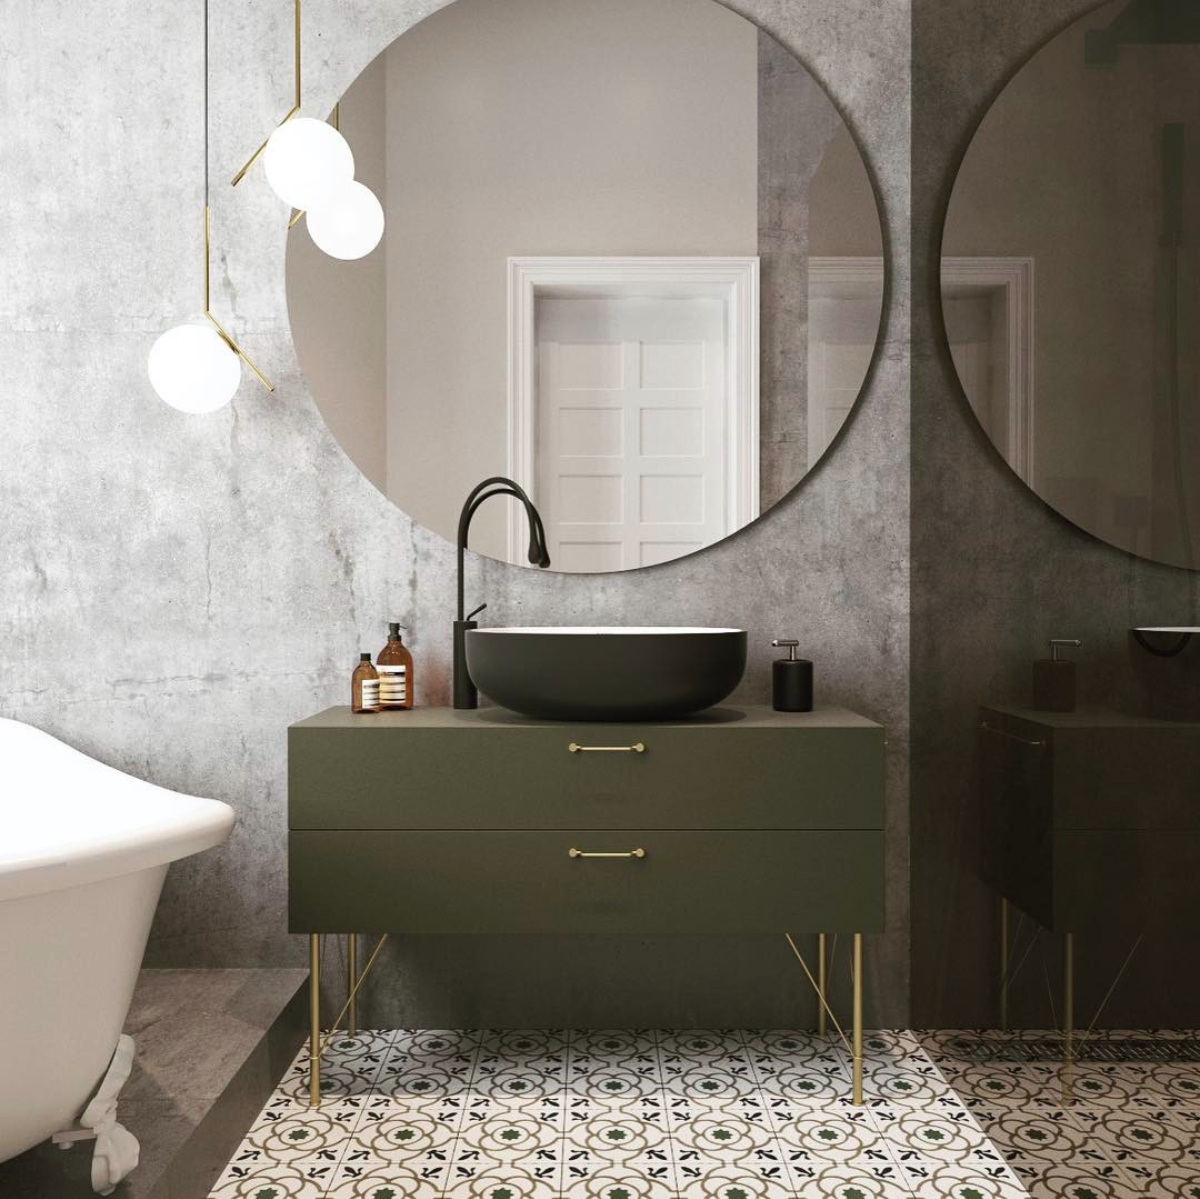 Olive green bathroom vanity, Flos lighting, large round mirror and concrete walls || Designed by Studio E || Olive green colour inspiration by First Sense